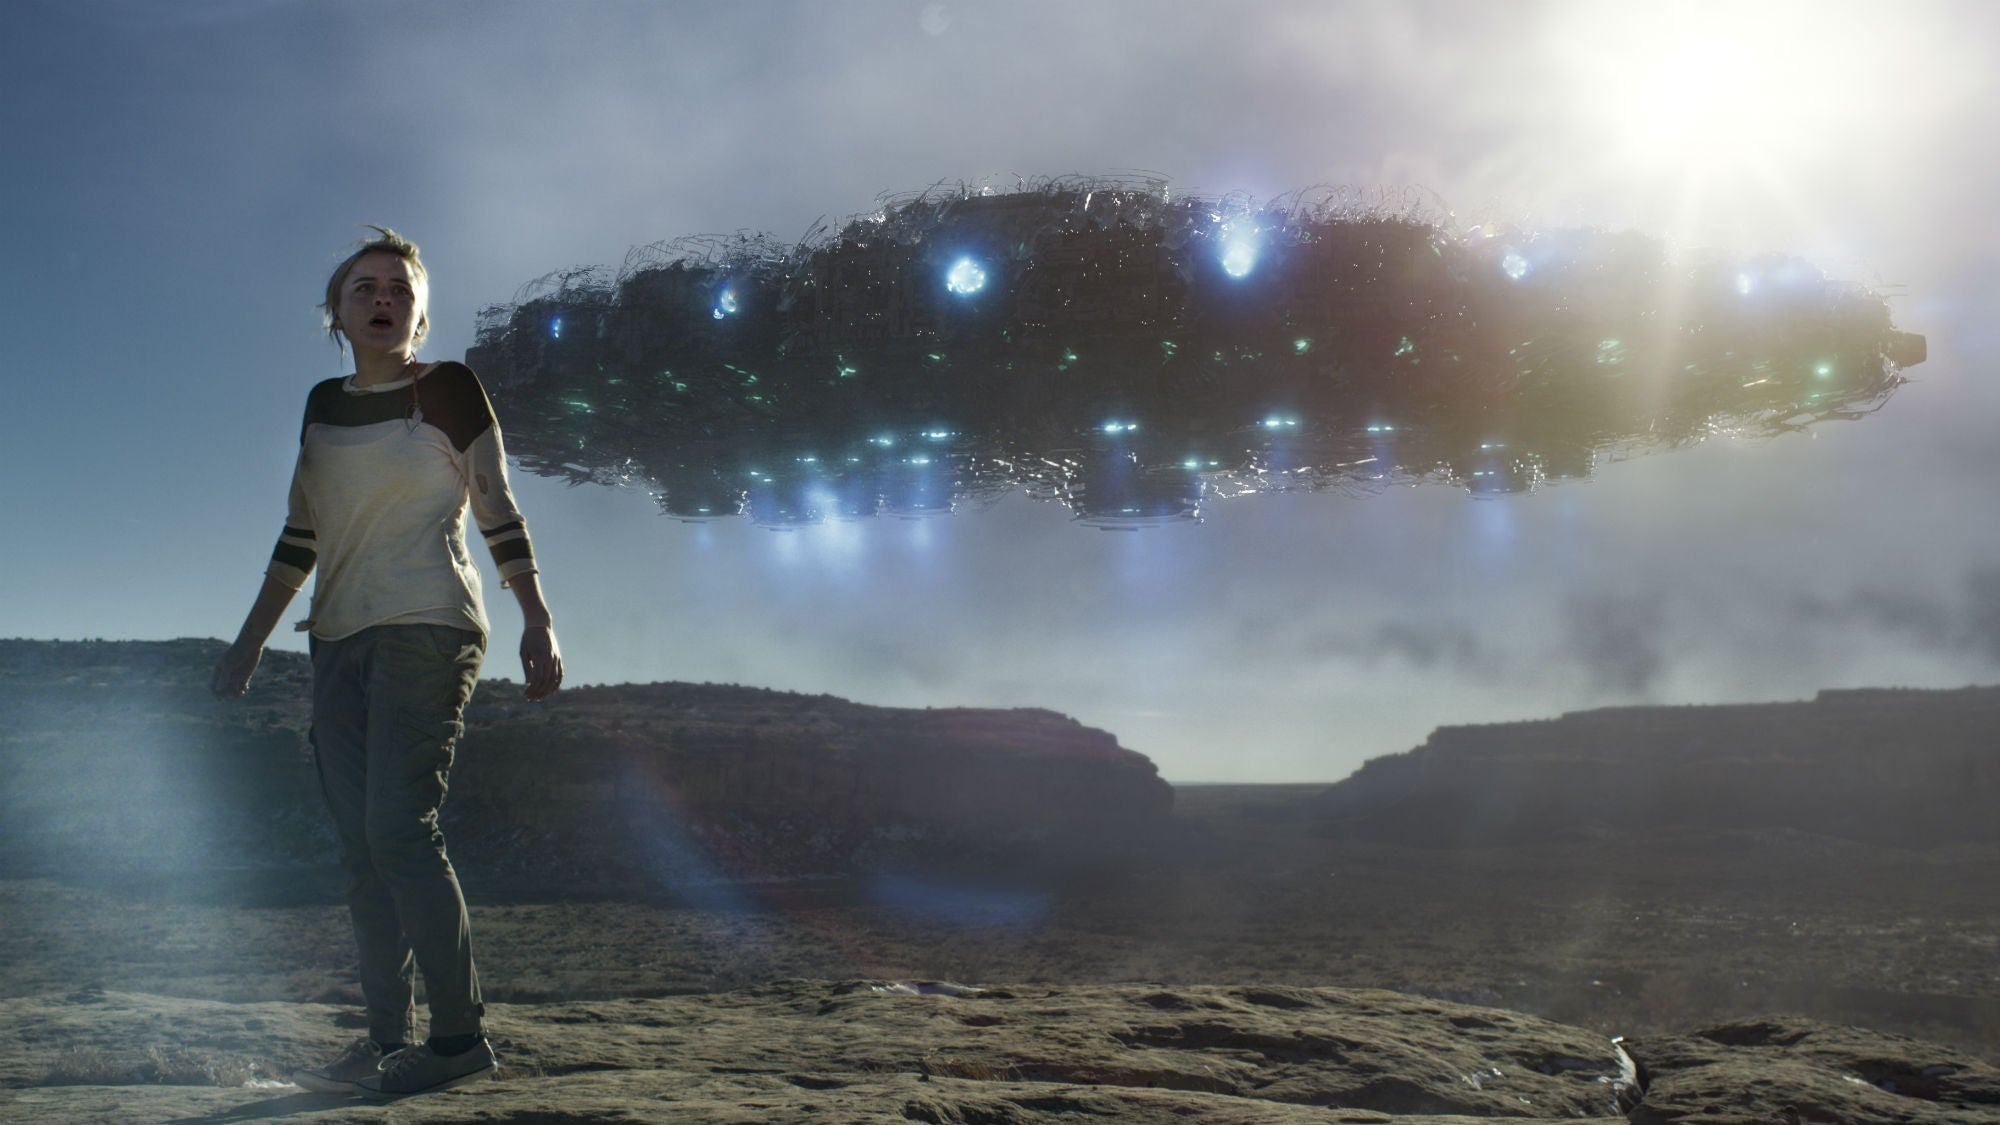 A Documentary Filmmaker Gets The Alien Footage Of A Lifetime In Beyond The Sky